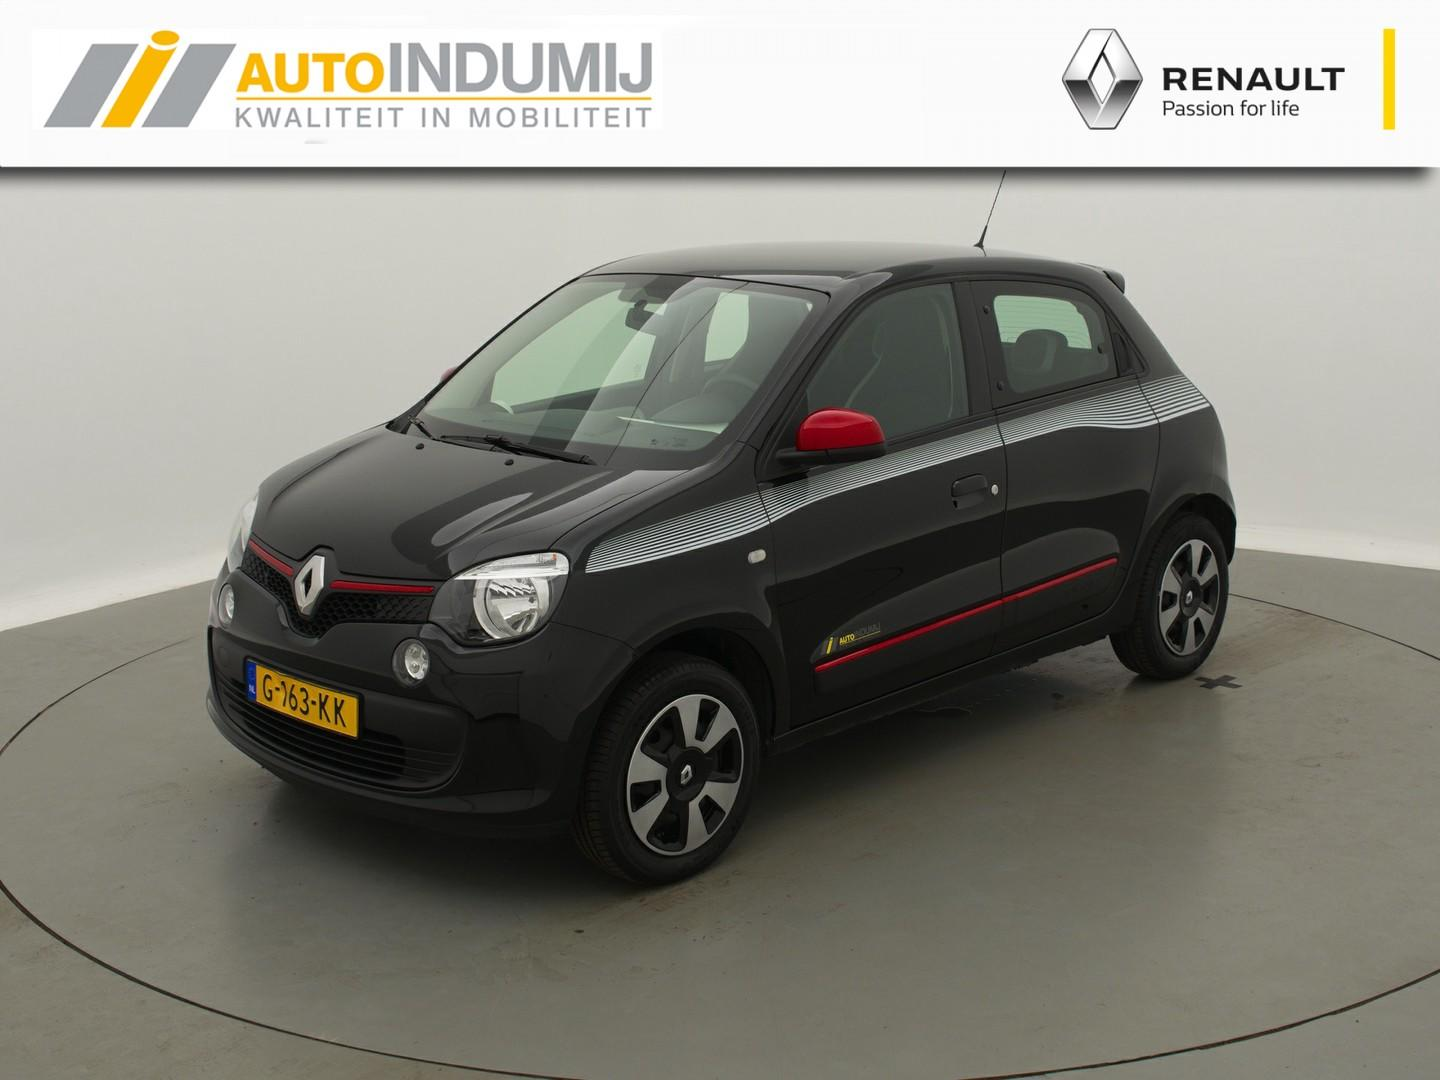 Renault Twingo Sce 70 collection / demo!